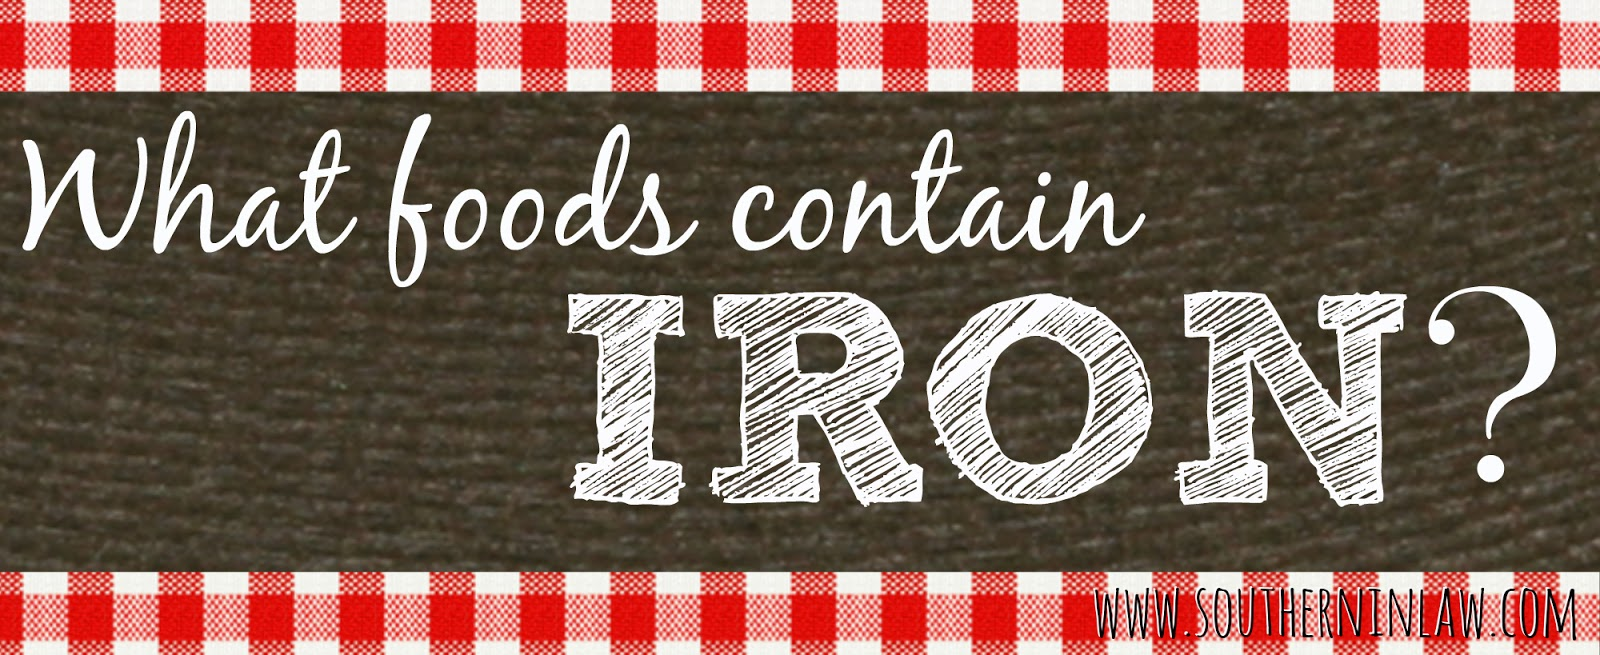 What foods contain iron?